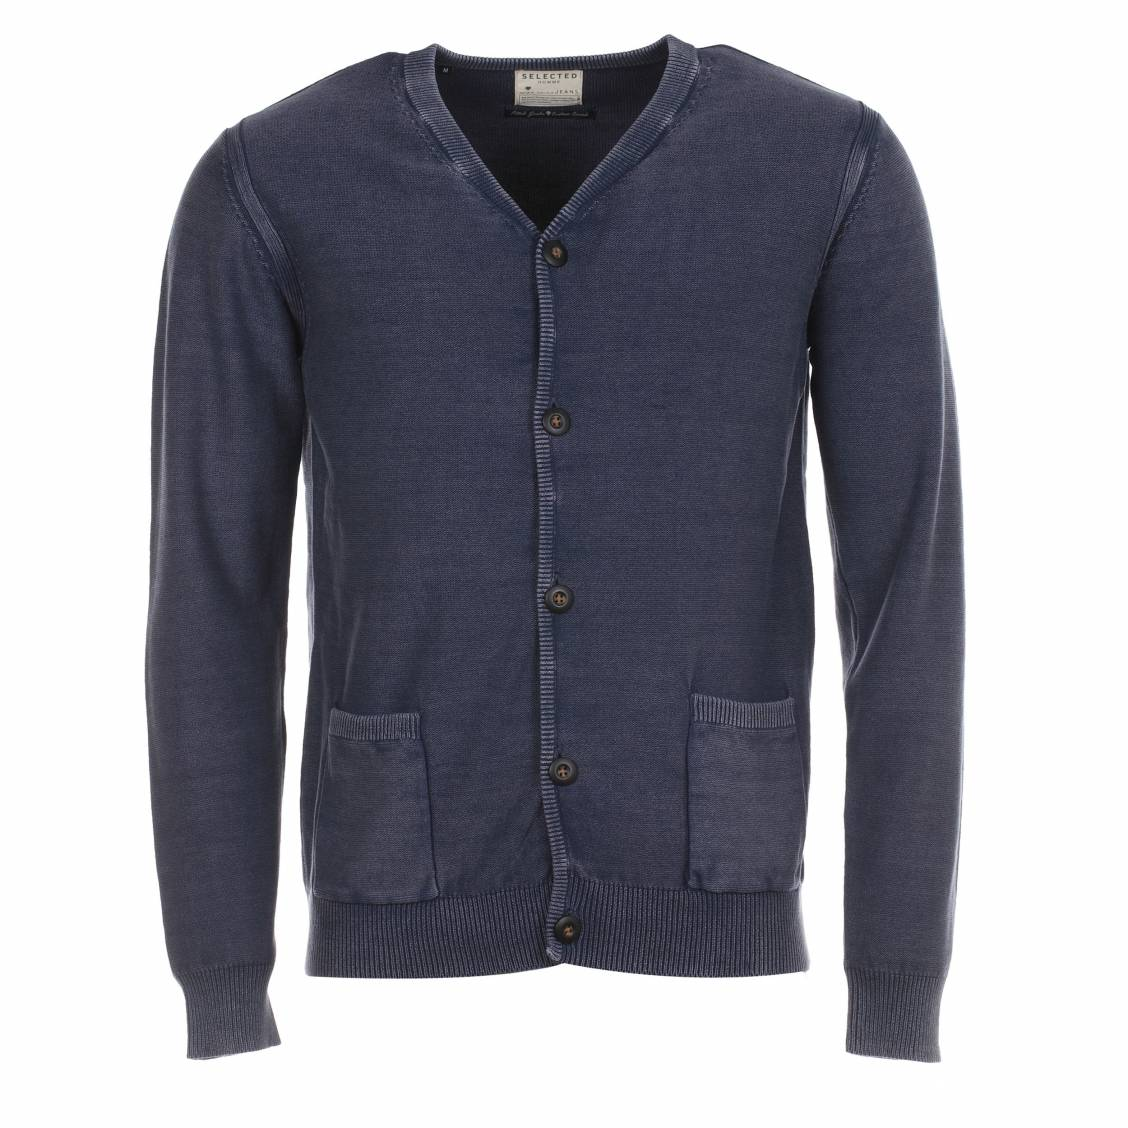 cardigan selected bleu navy